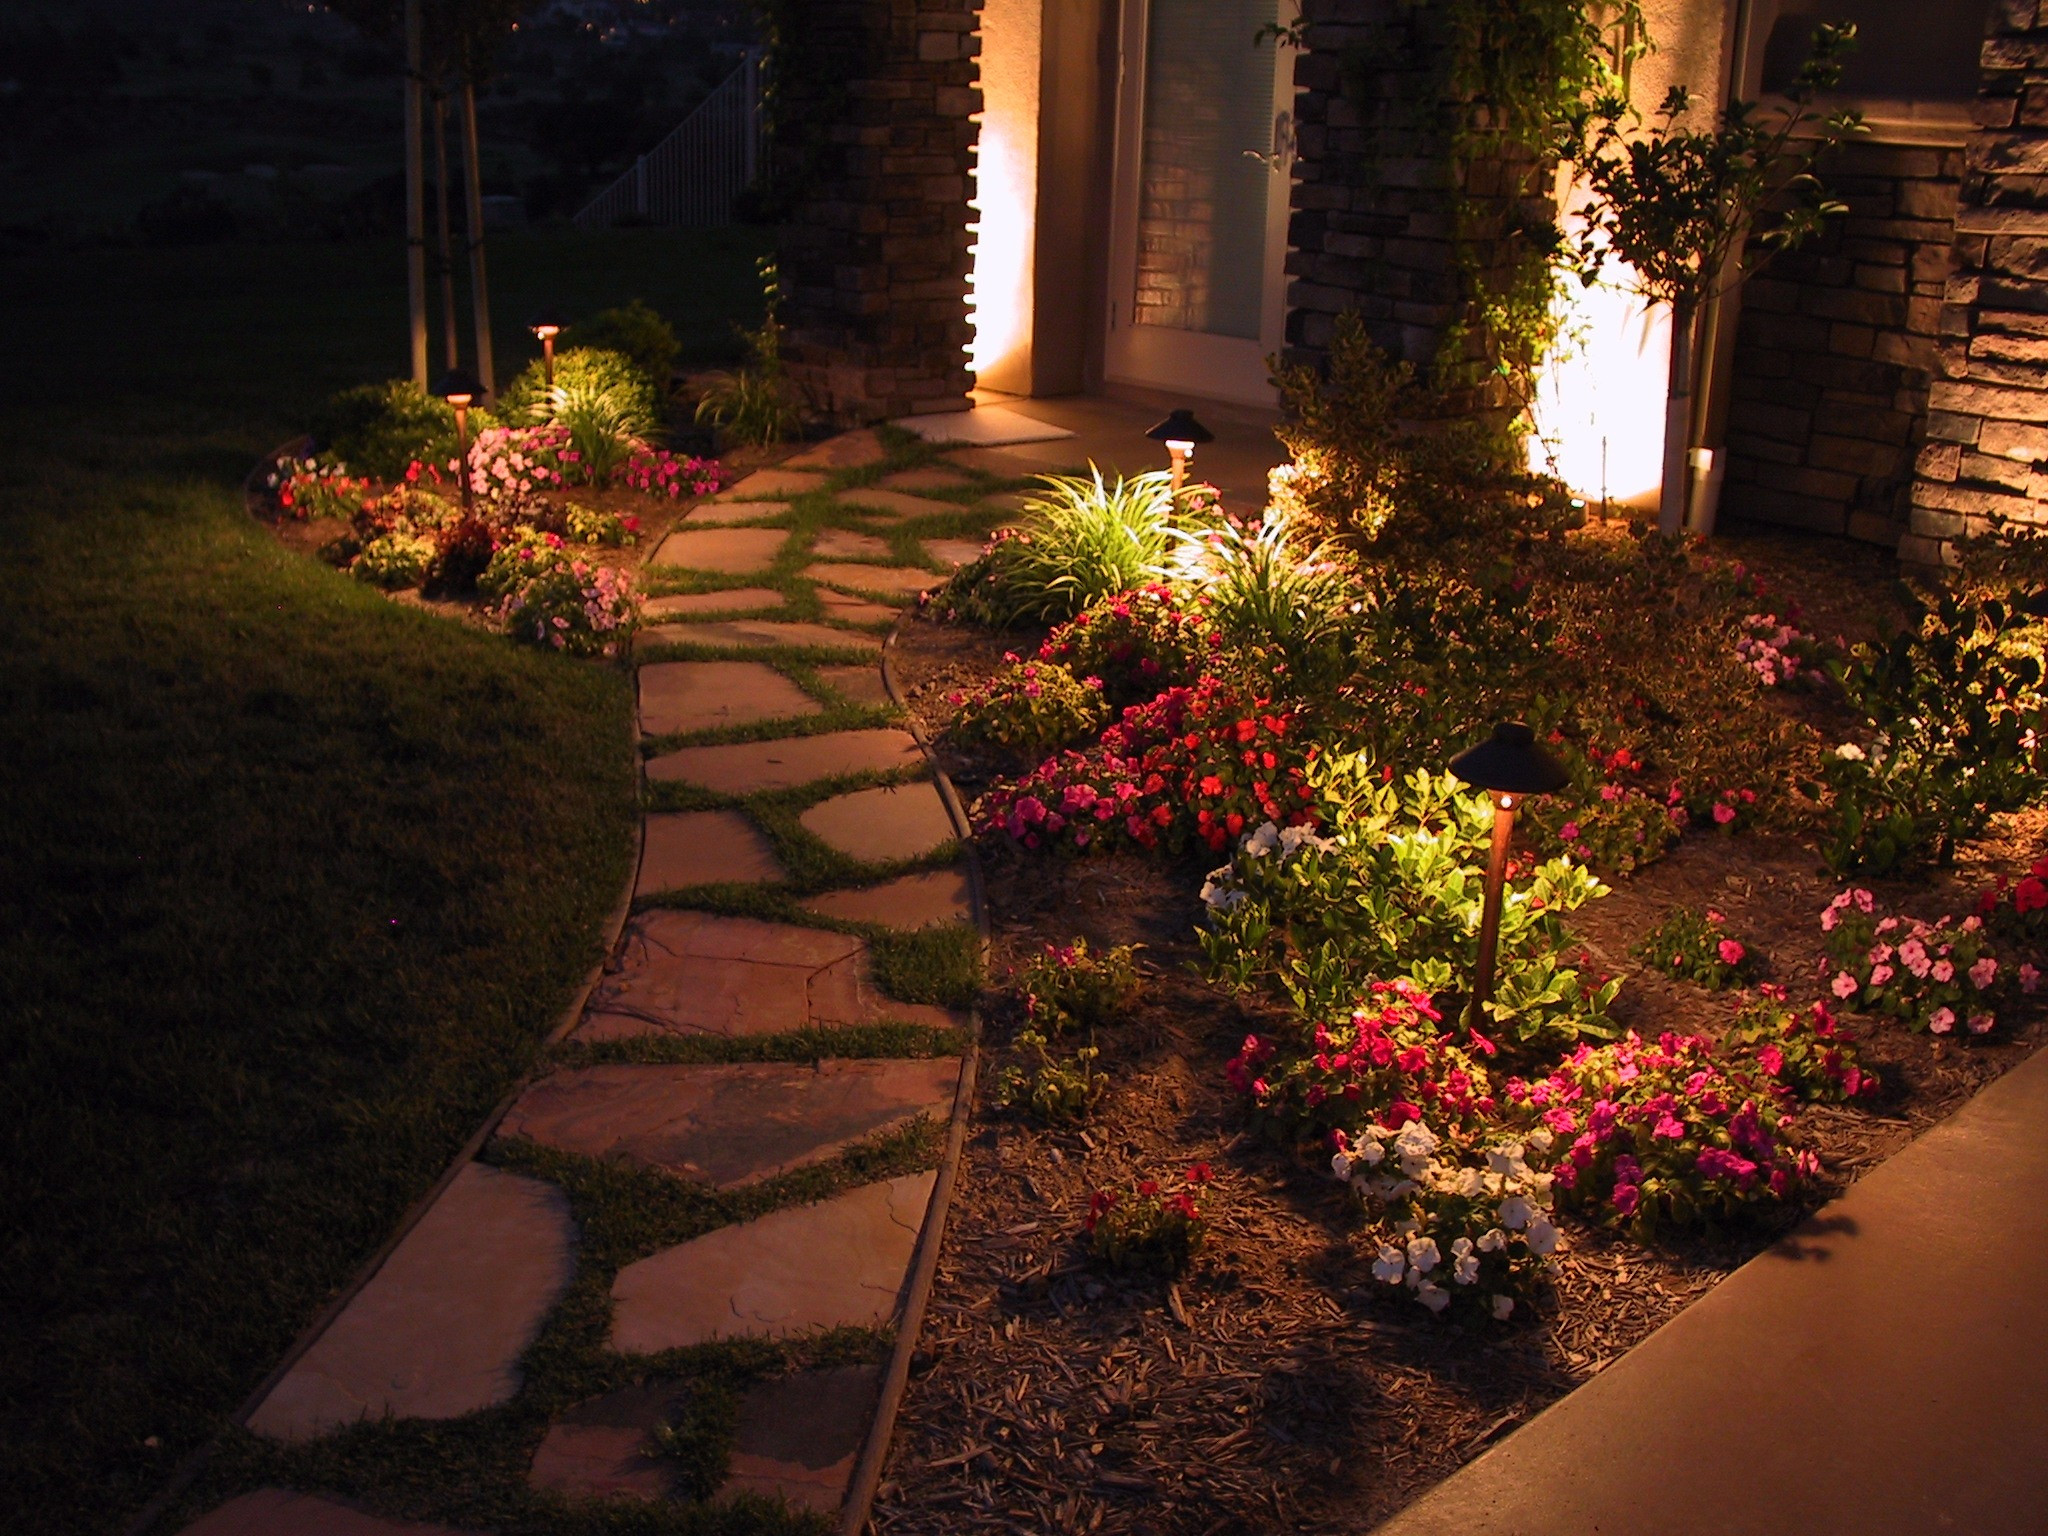 Outdoor Lighting Ideas 5 Pathway Lighting Tips Ideas Walkway Lights Guide